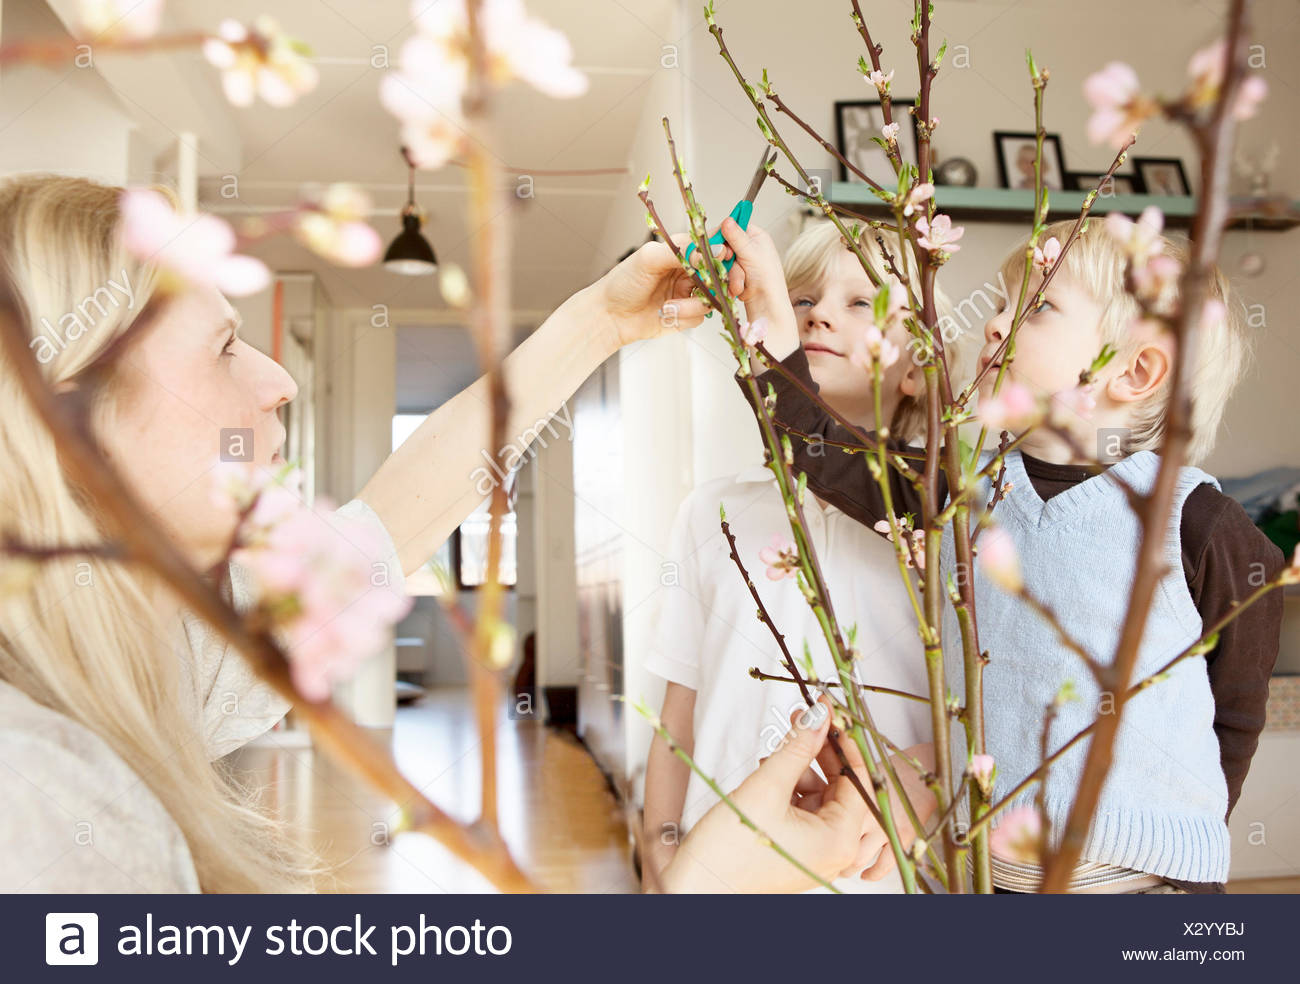 Mid adult mother and two sons trimming blossom twigs in sitting room - Stock Image